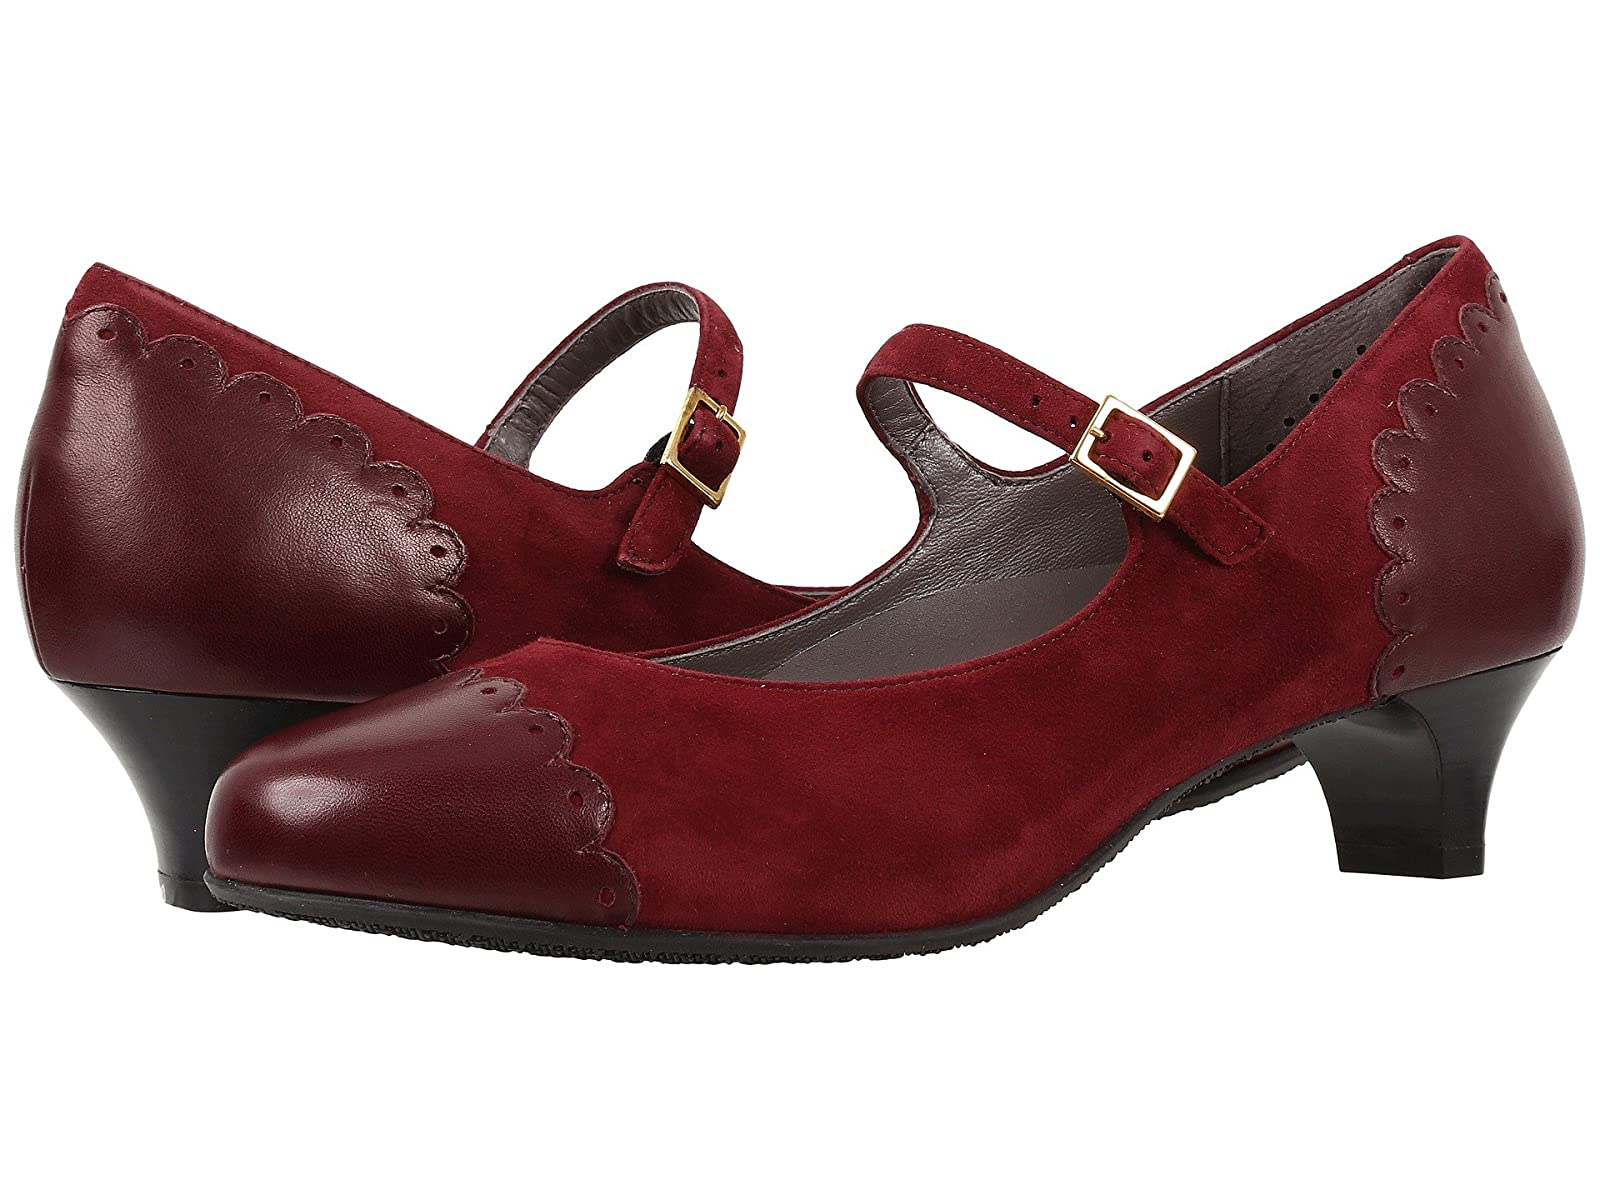 SAS CateCheap and distinctive eye-catching shoes